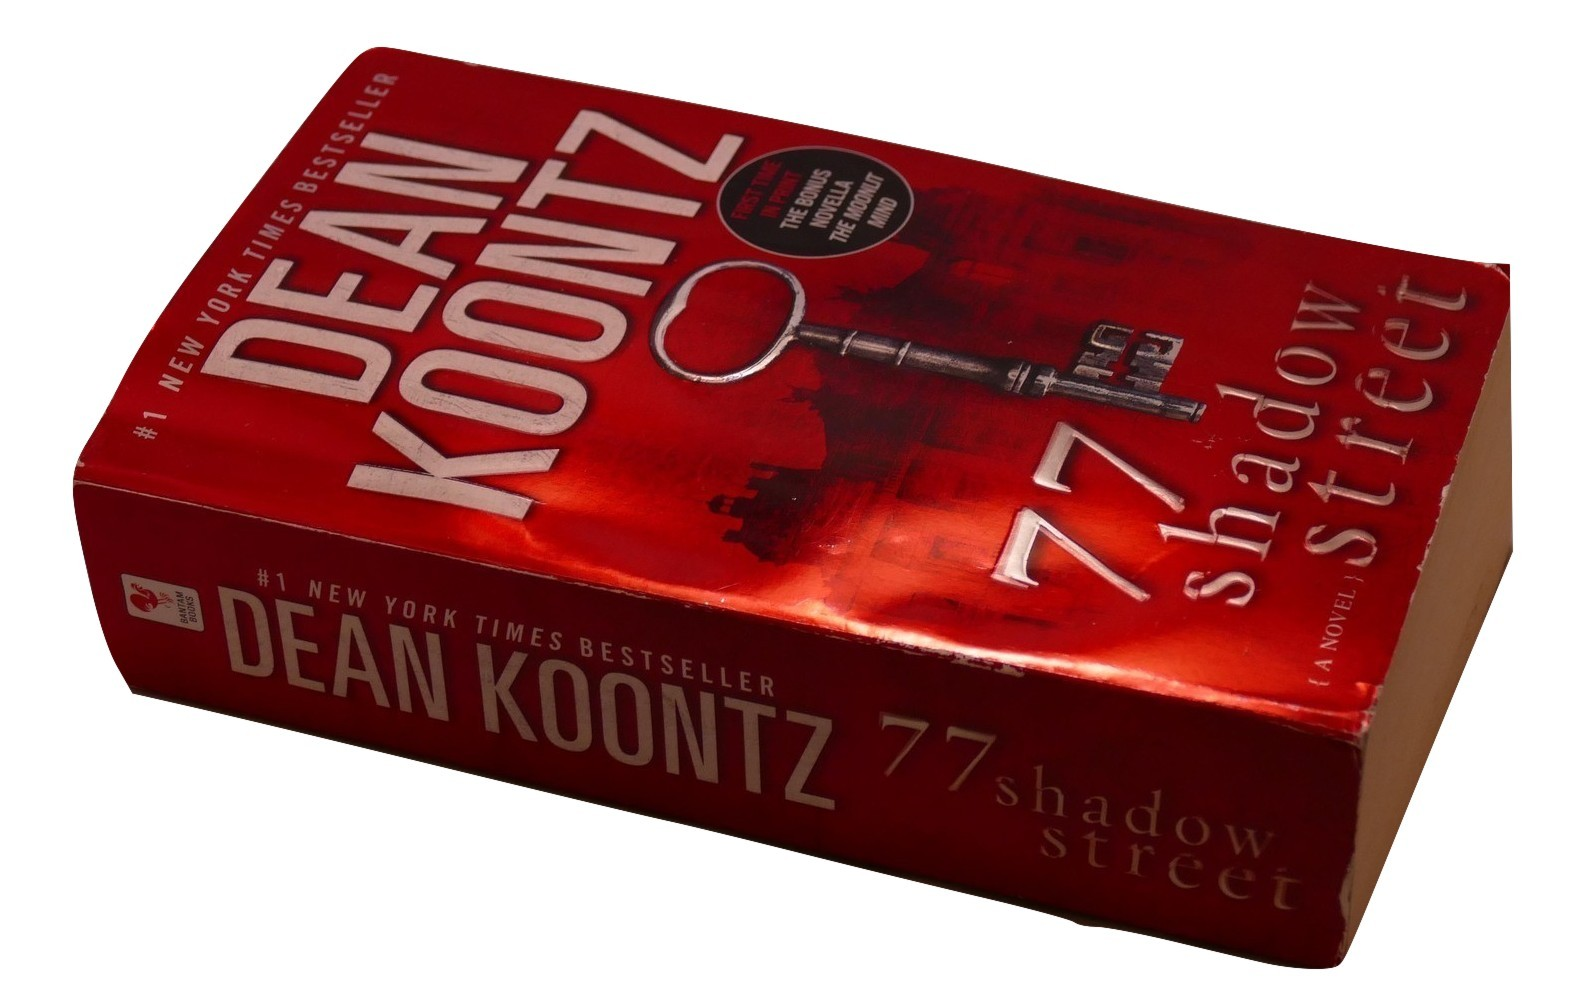 77 Shadow Street by Dean Koontz Paperback Book Fiction